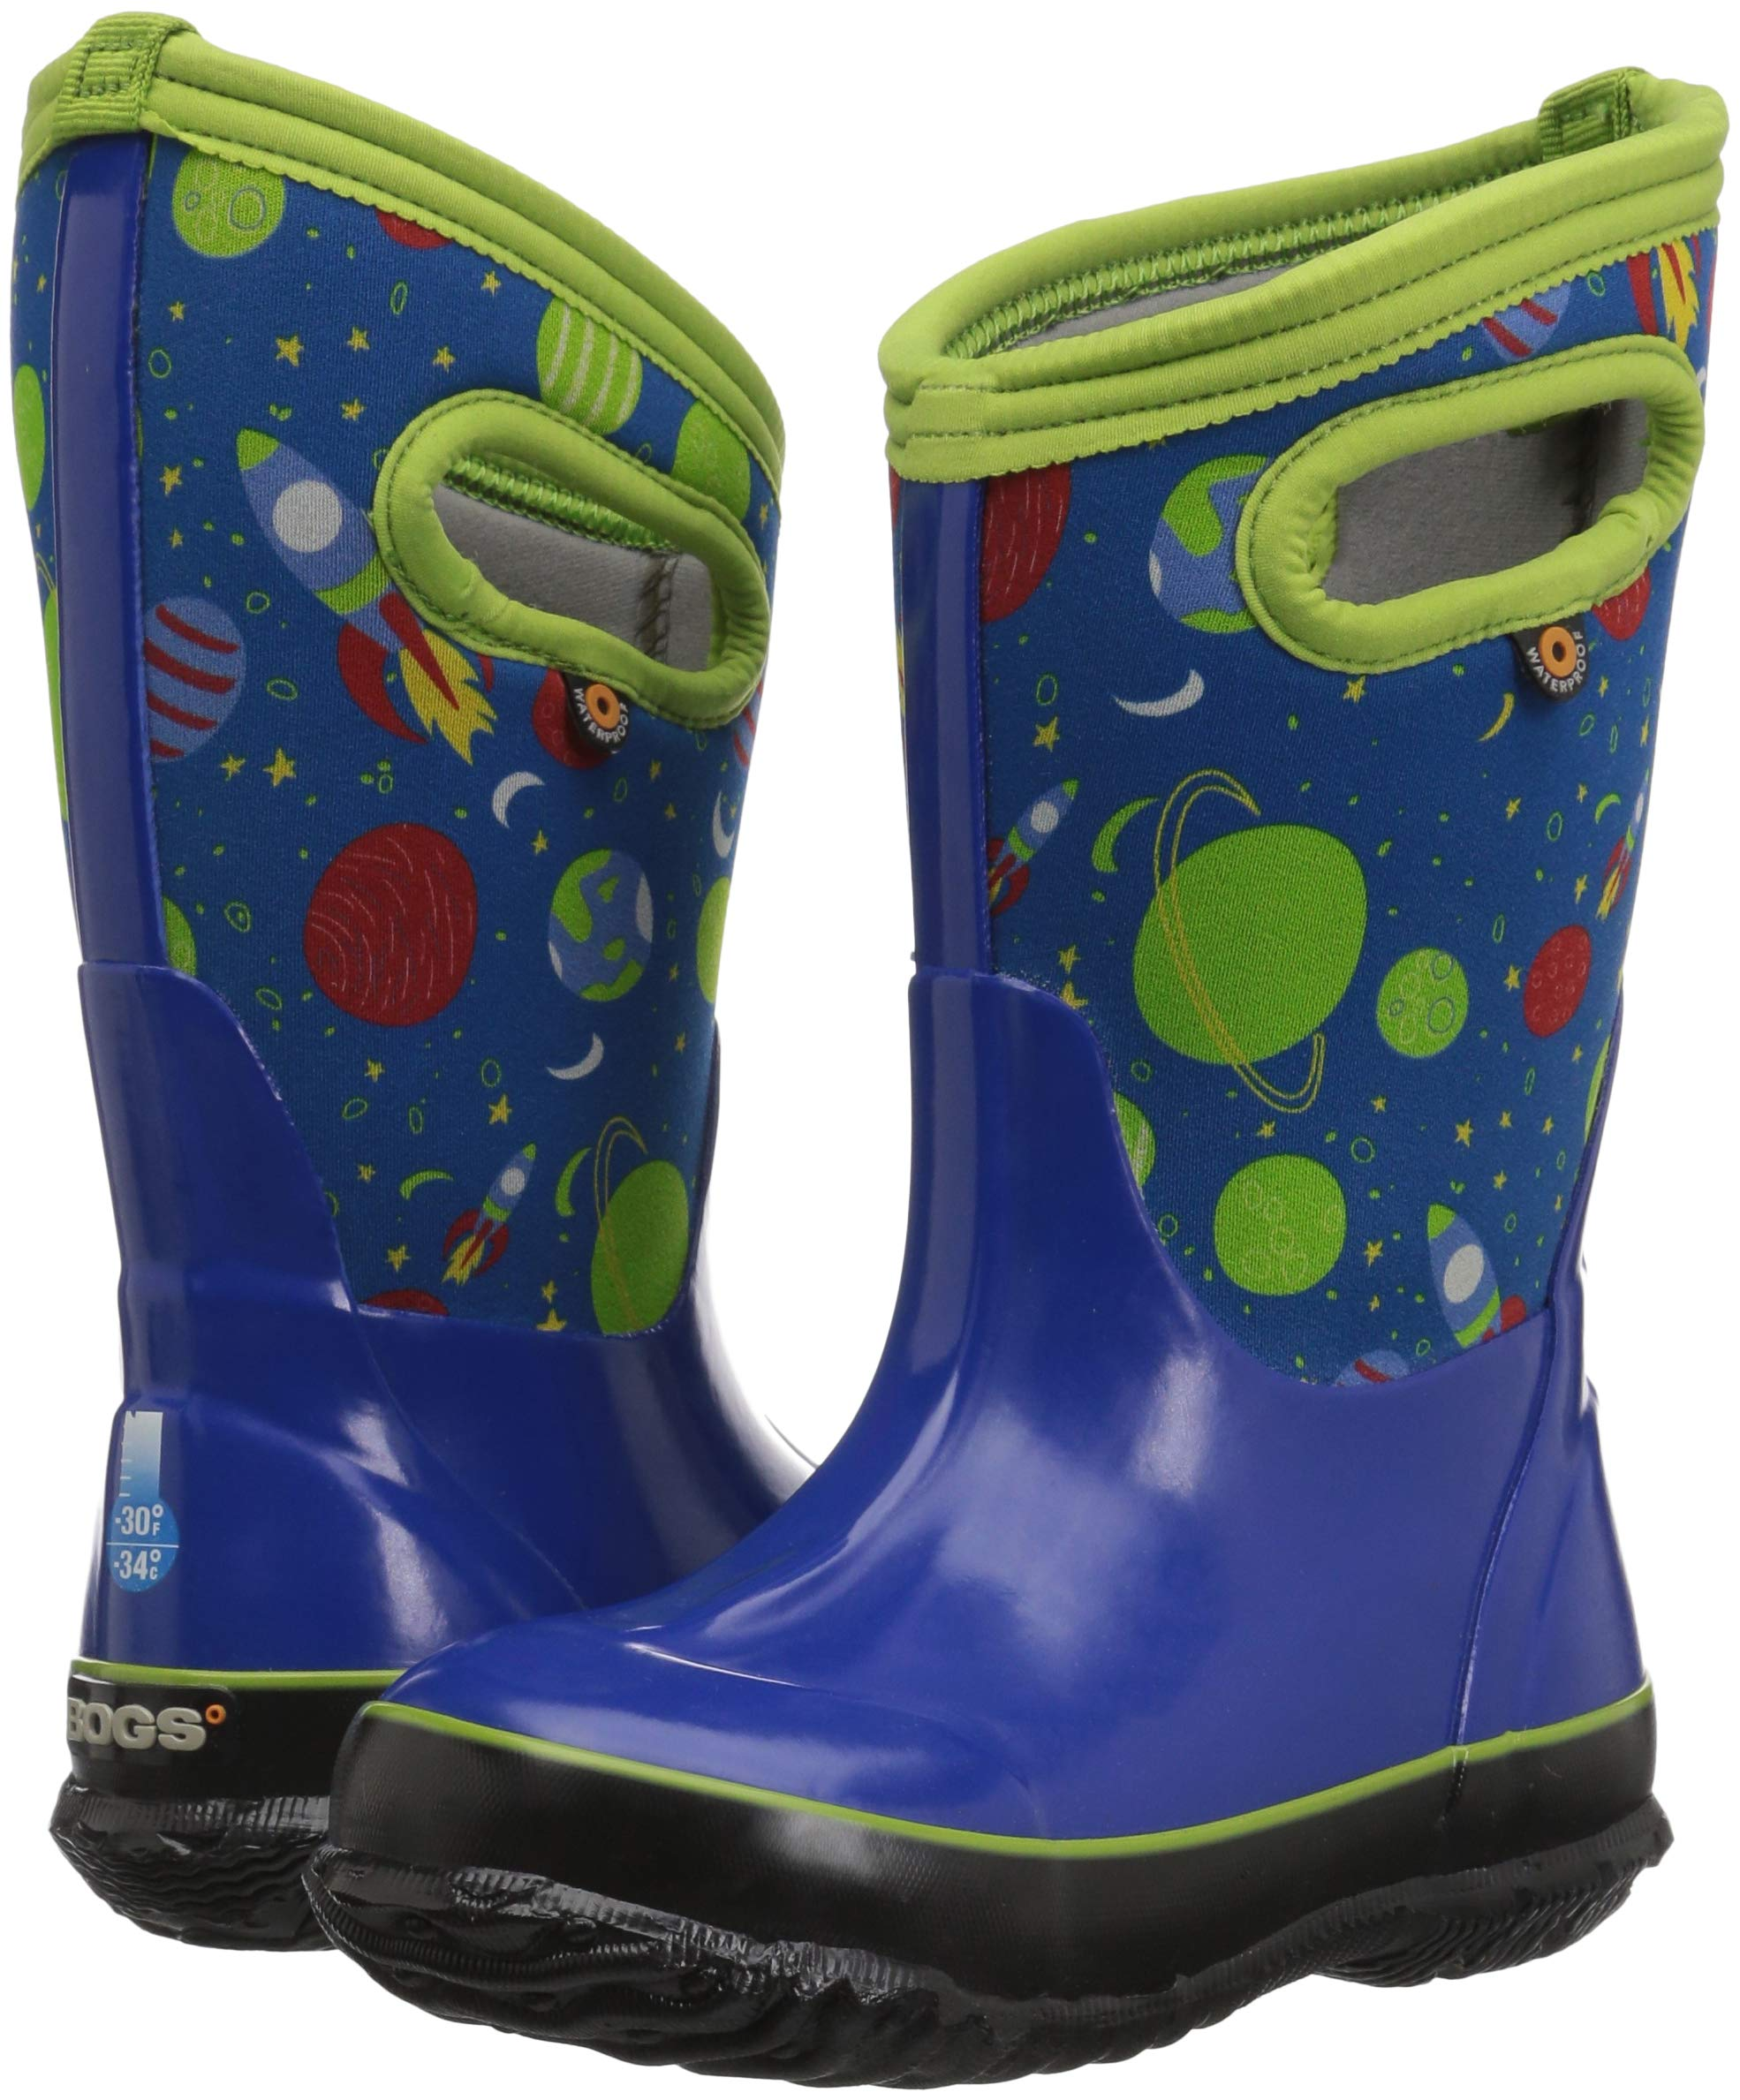 Bogs Classic High Waterproof Insulated Rubber Neoprene Rain Boot Snow, Space Blue/Multi, 11 M US Little Kid by Bogs (Image #6)